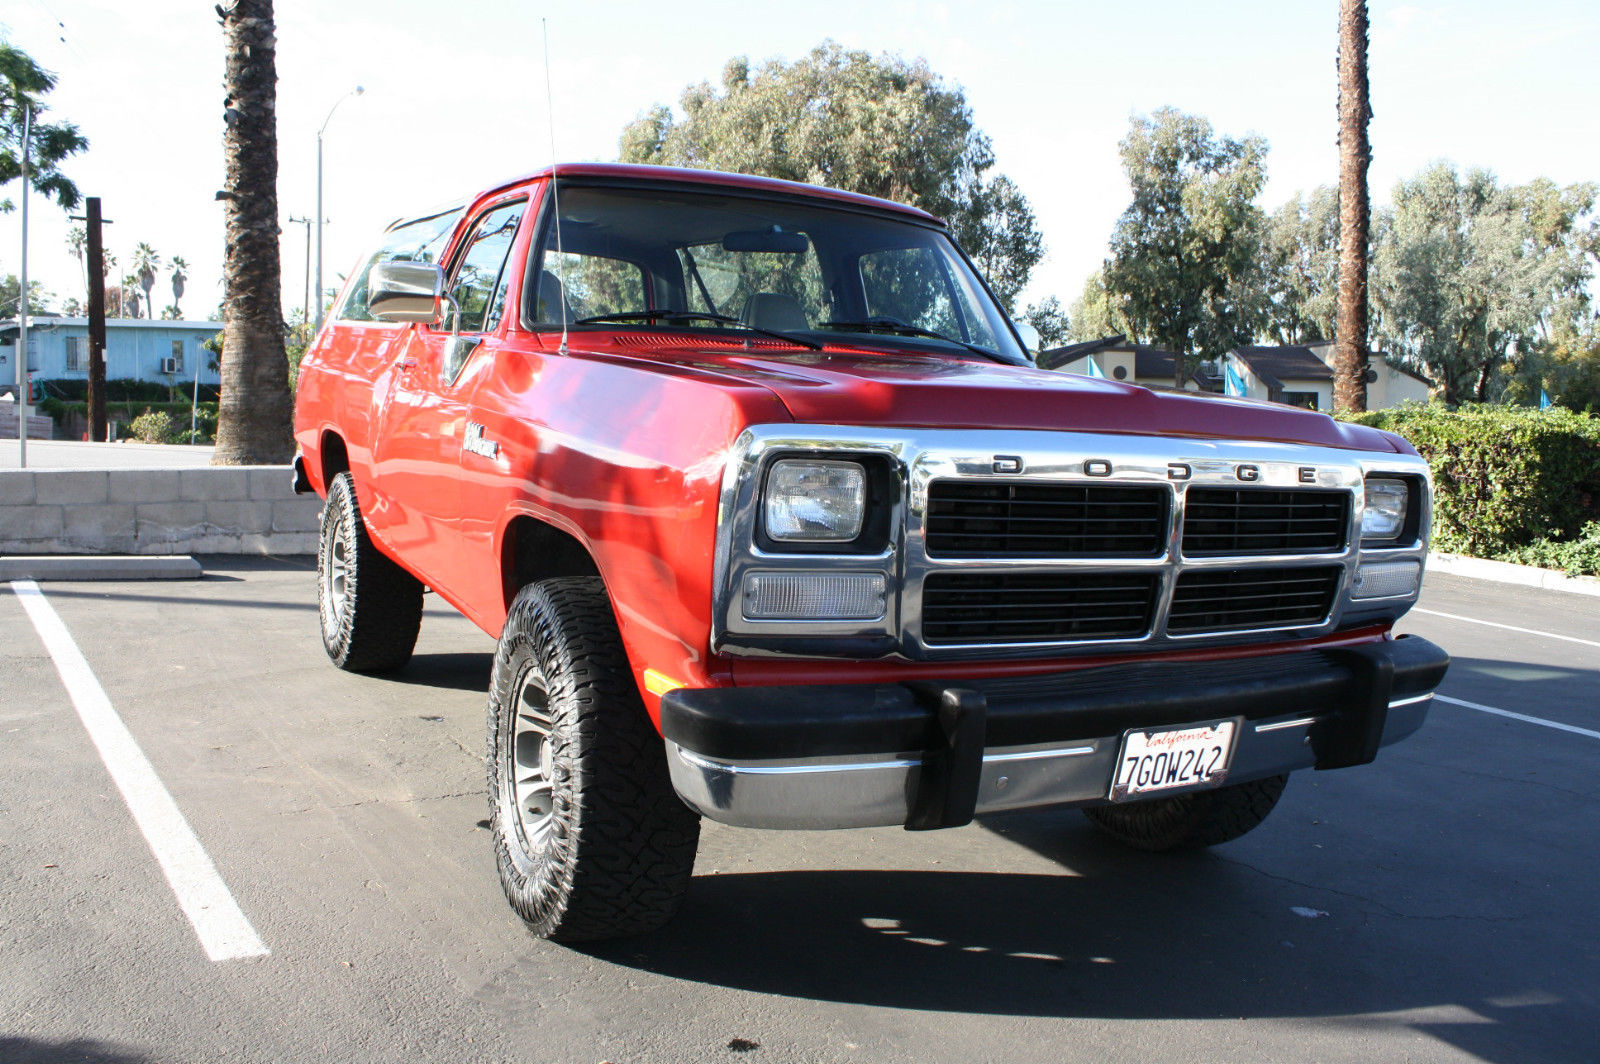 Dodge Ice Charger >> 1991 Dodge Ramcharger Base Sport Utility 2-Door 5.2L 4x4 - Classic Dodge Ramcharger 1991 for sale